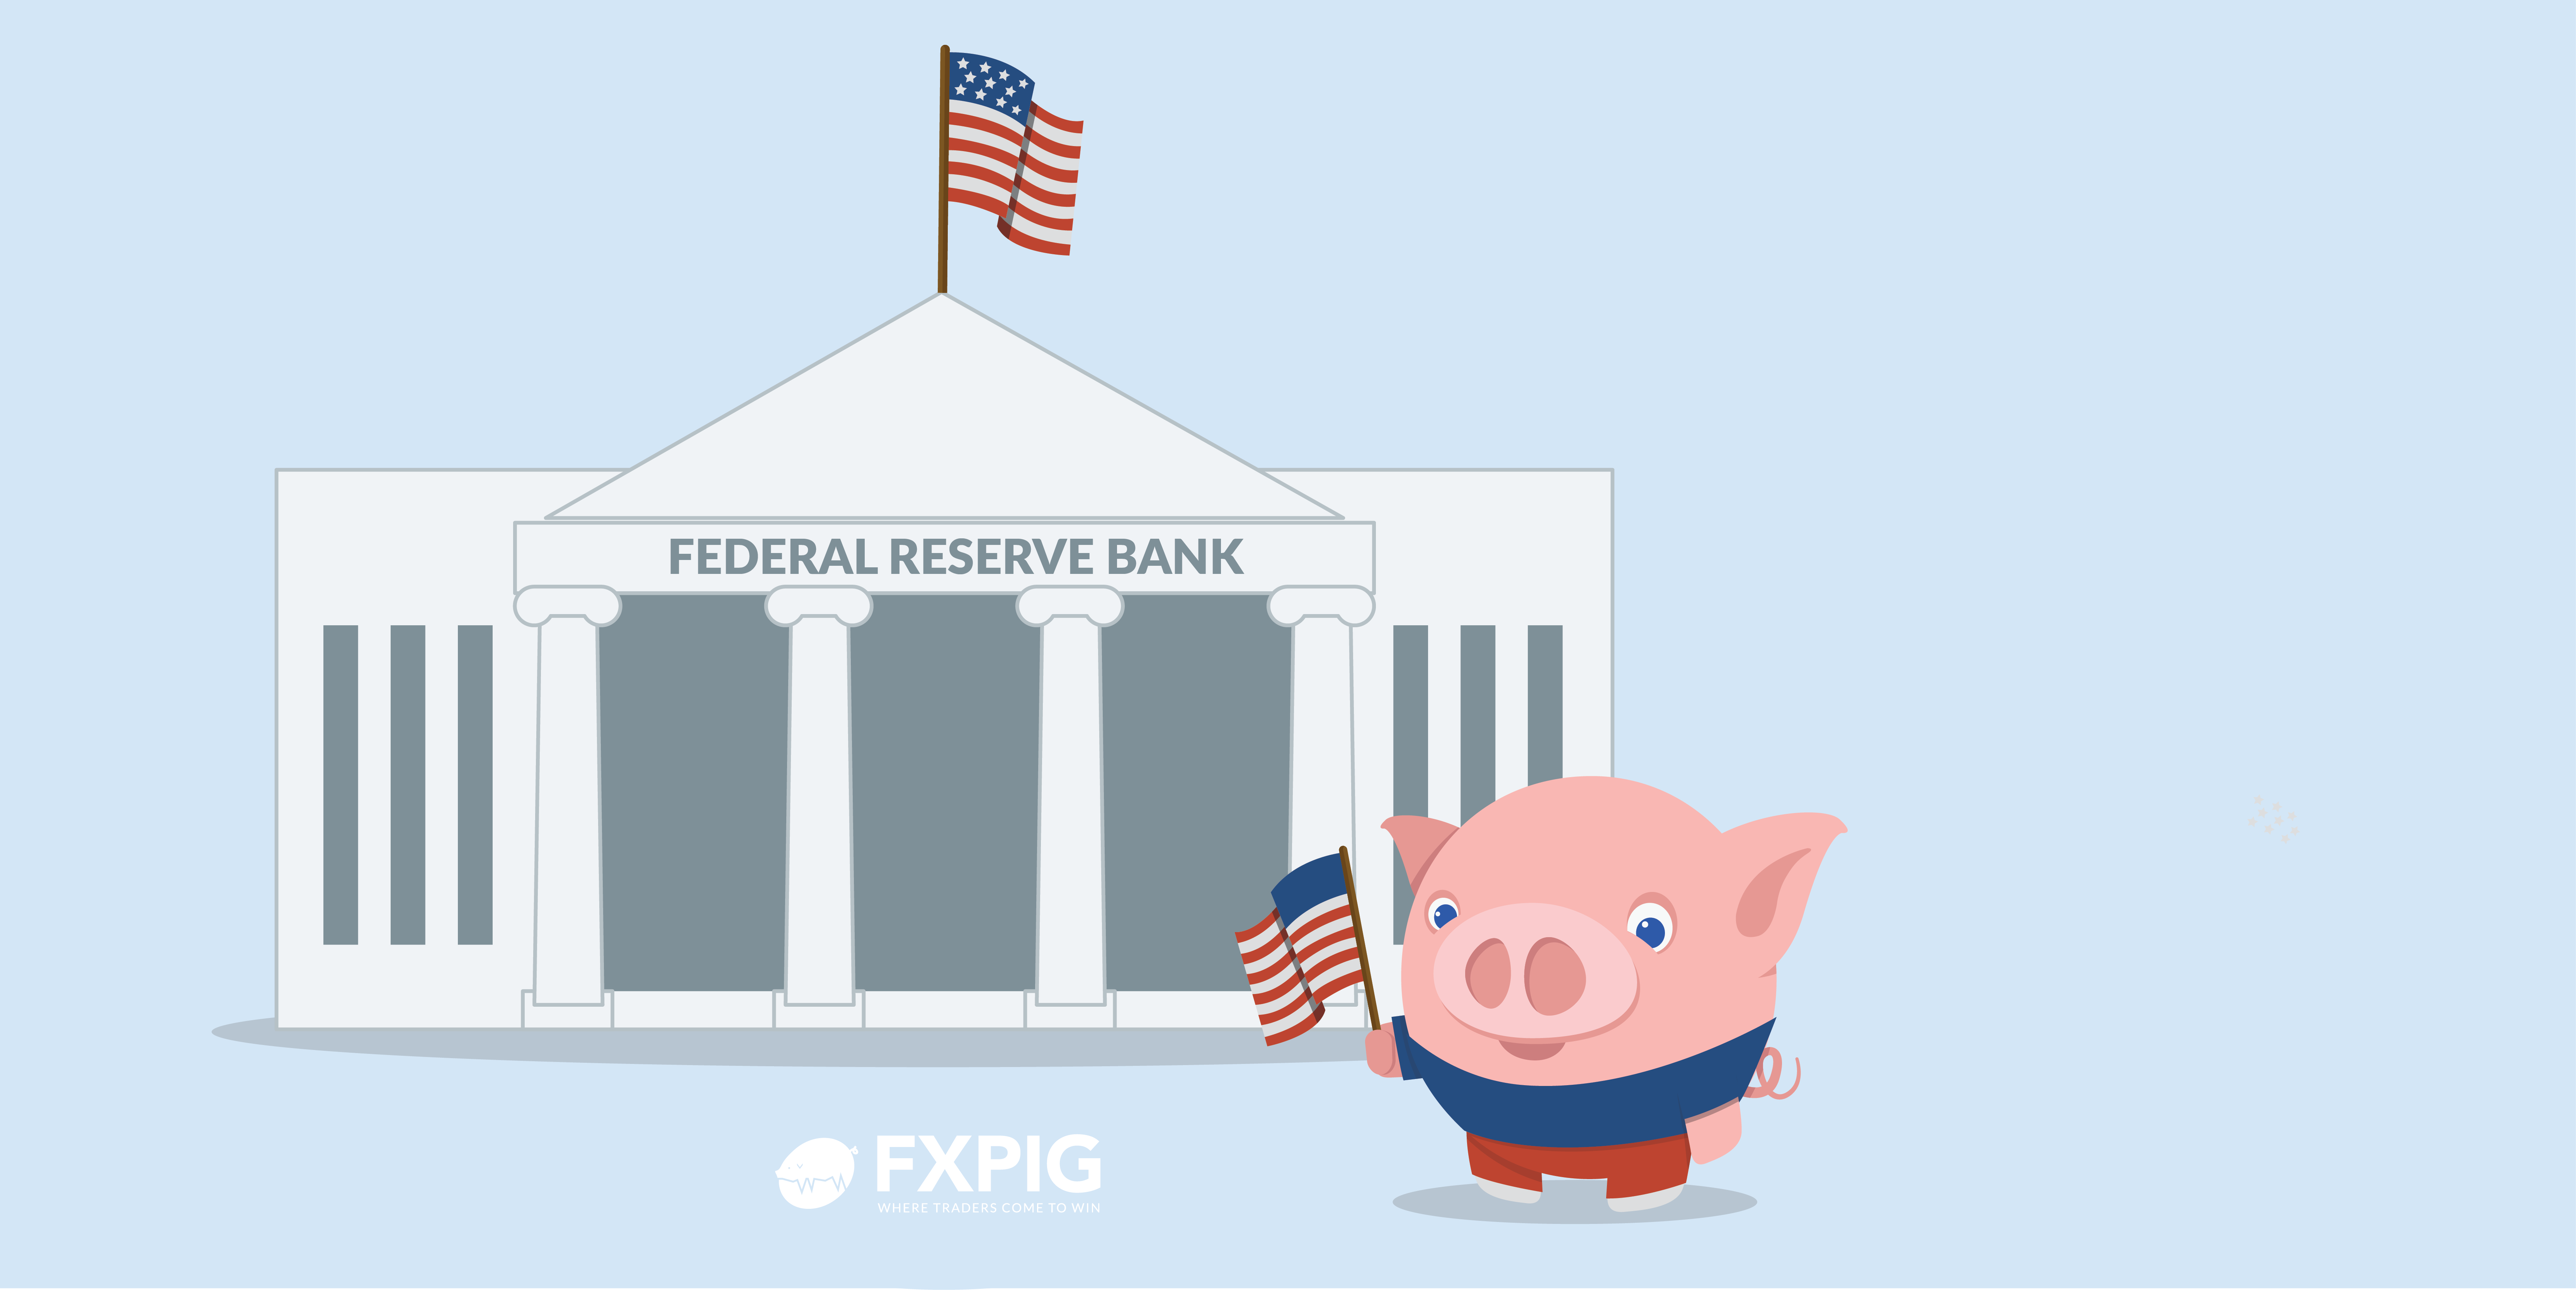 FOREX_EUR-usd-bulls-poised-fed-meeting_FXPIG